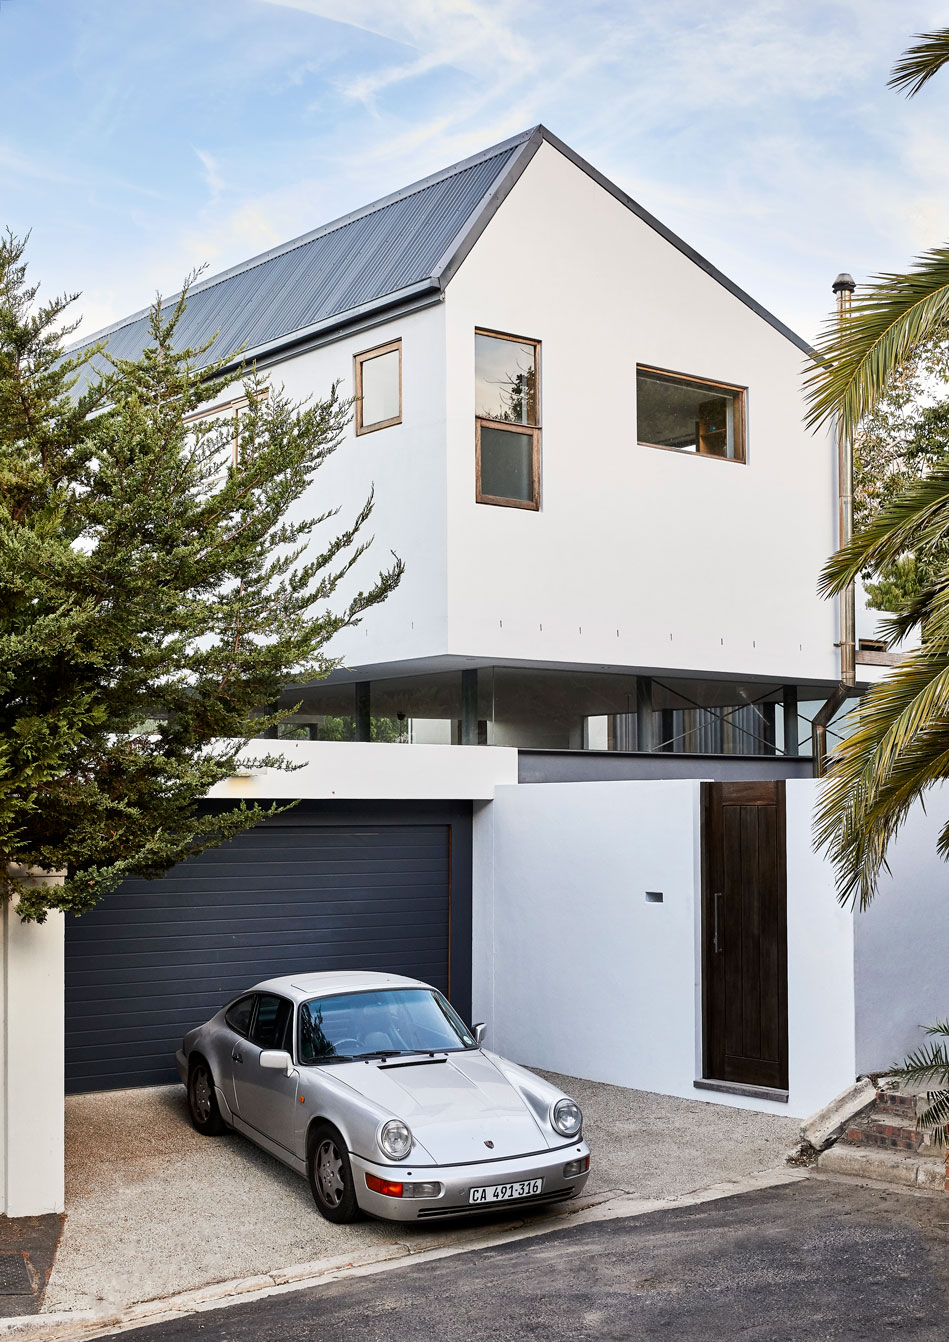 From the street, the top storey of the home appears to be floating beyond the perimeter wall. The relatively low wall to the street allows the ground floor to also benefit from the mountain views.